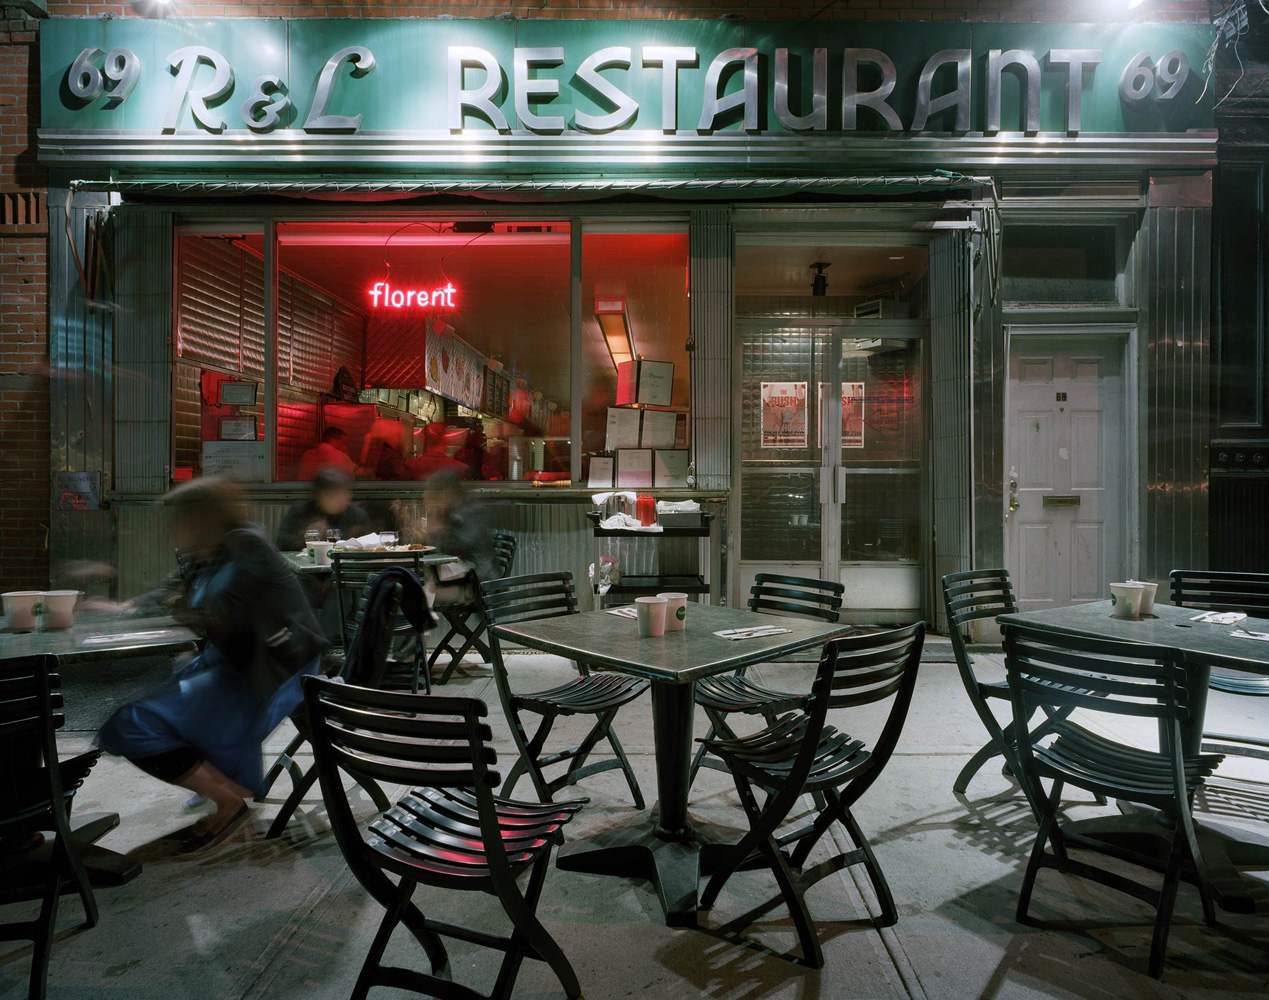 Florent, 69 Gansevoort Street, Meatpacking District, New York, 2005 -2007, by David Leventi. Print on Dibond of café's outside seating at night.